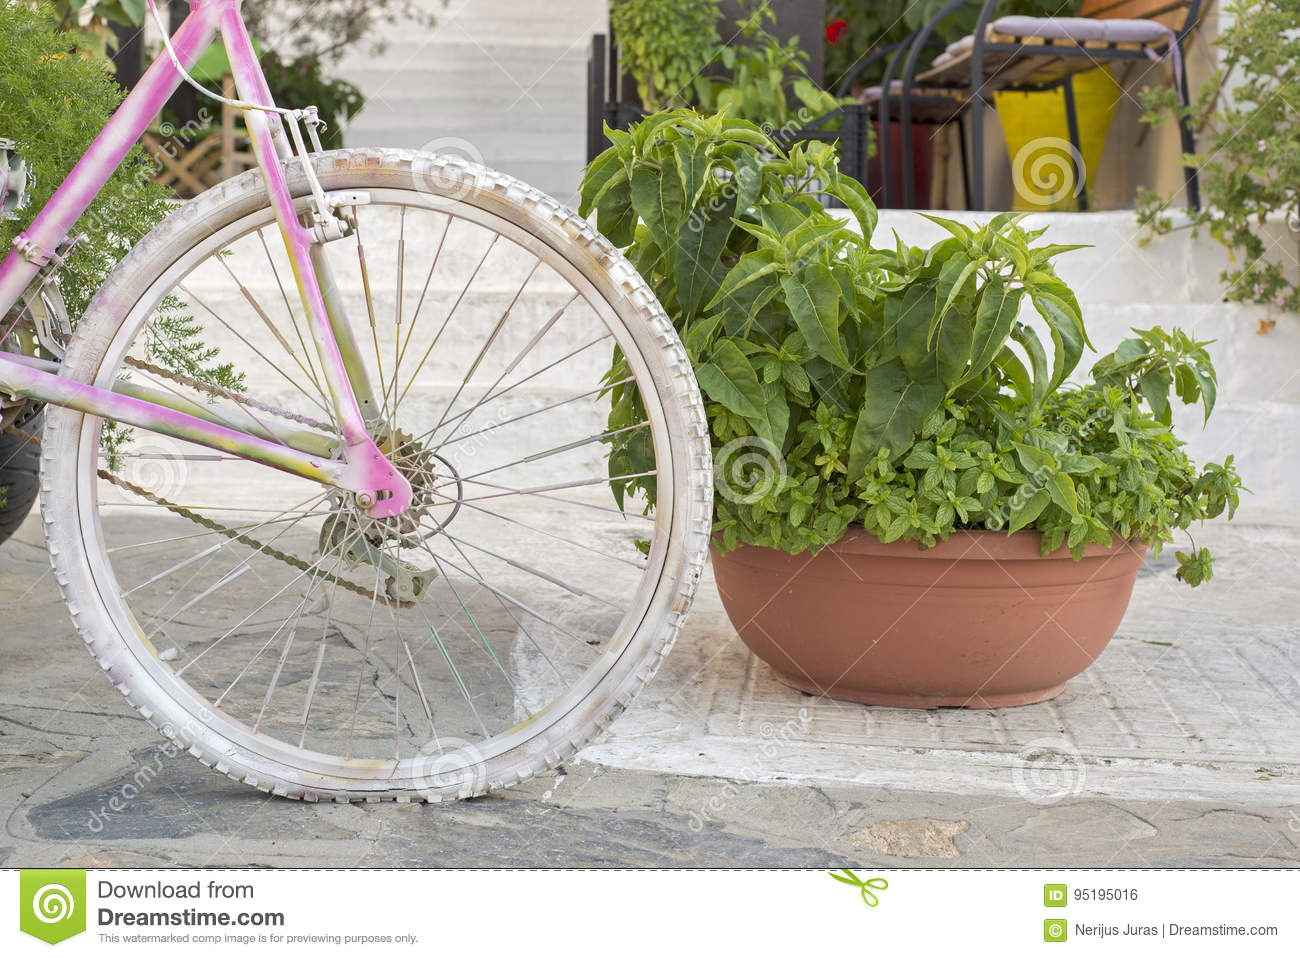 Street decoration with flowers and Bicycle